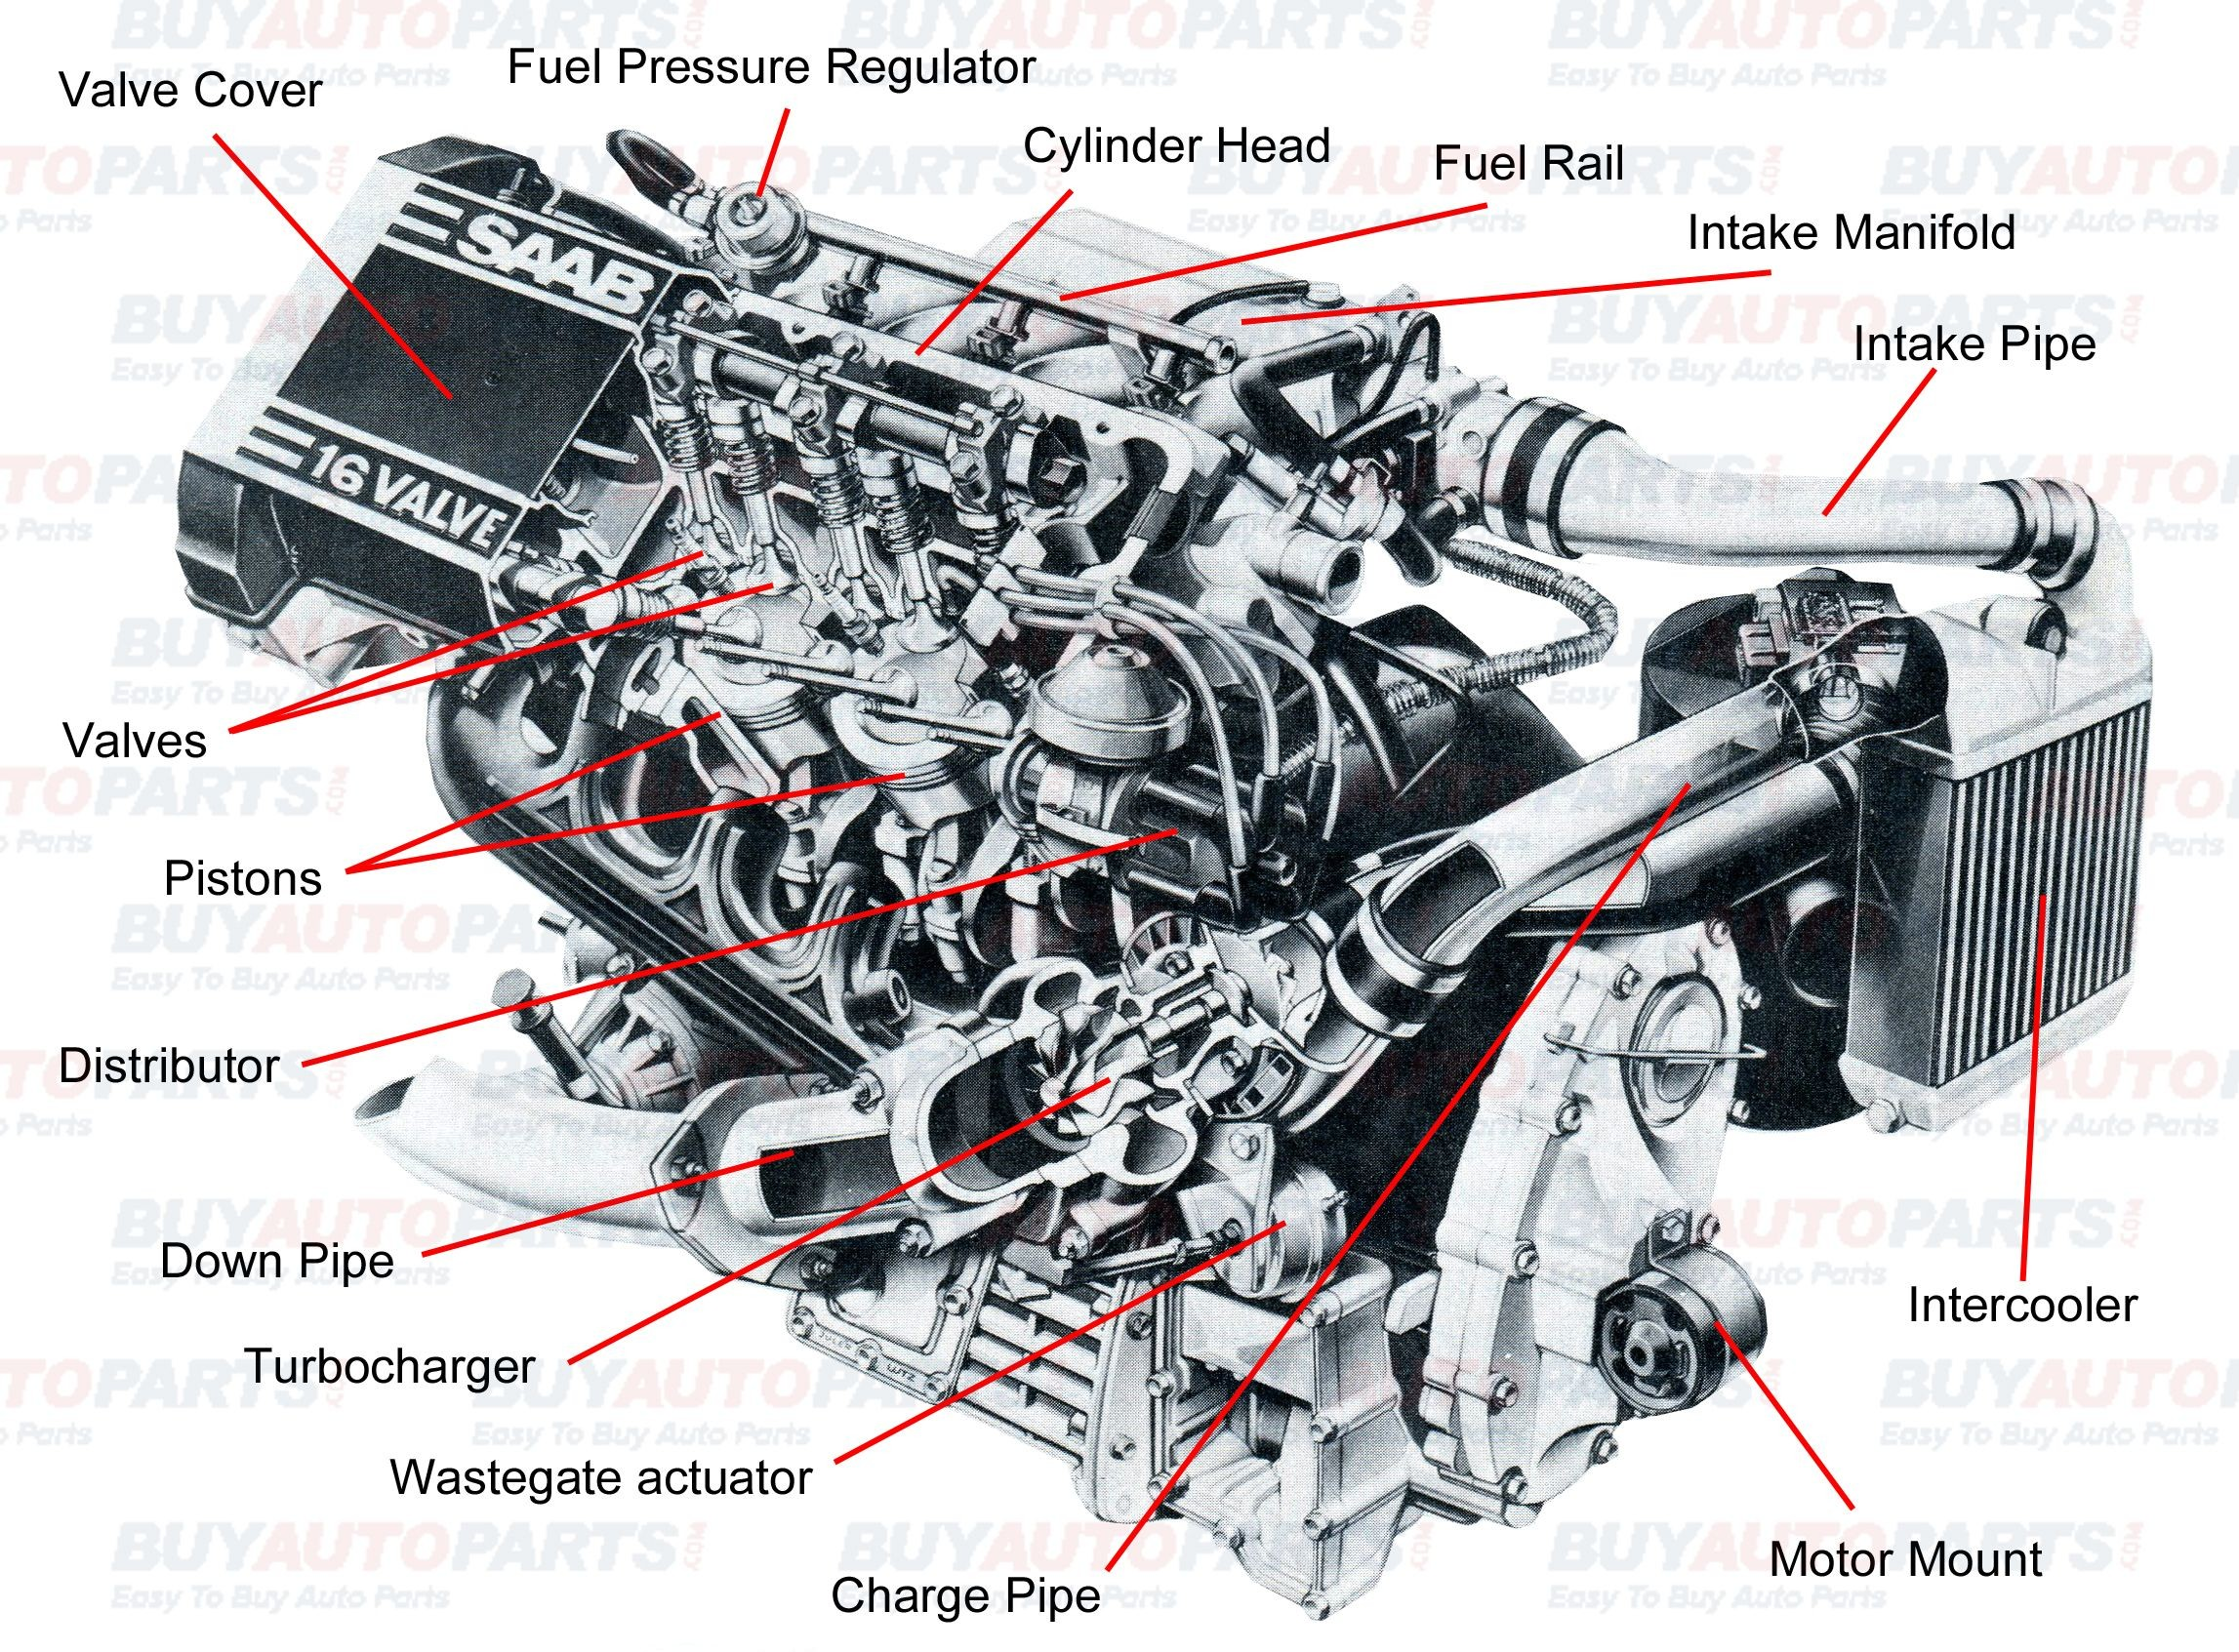 Parts Of A Car Wheel Diagram All Internal Bustion Engines Have the ...